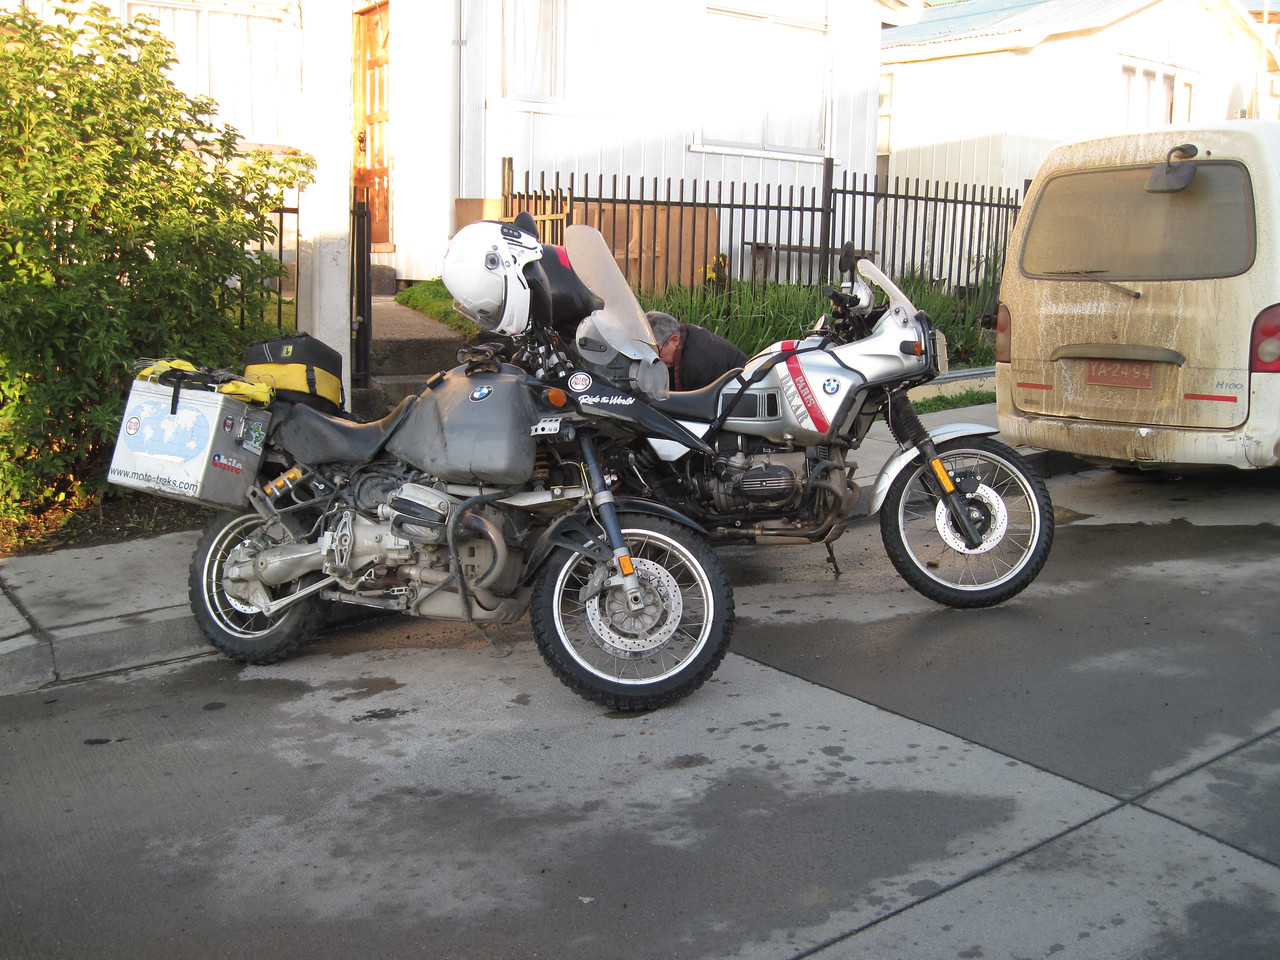 R100GS and The Beast